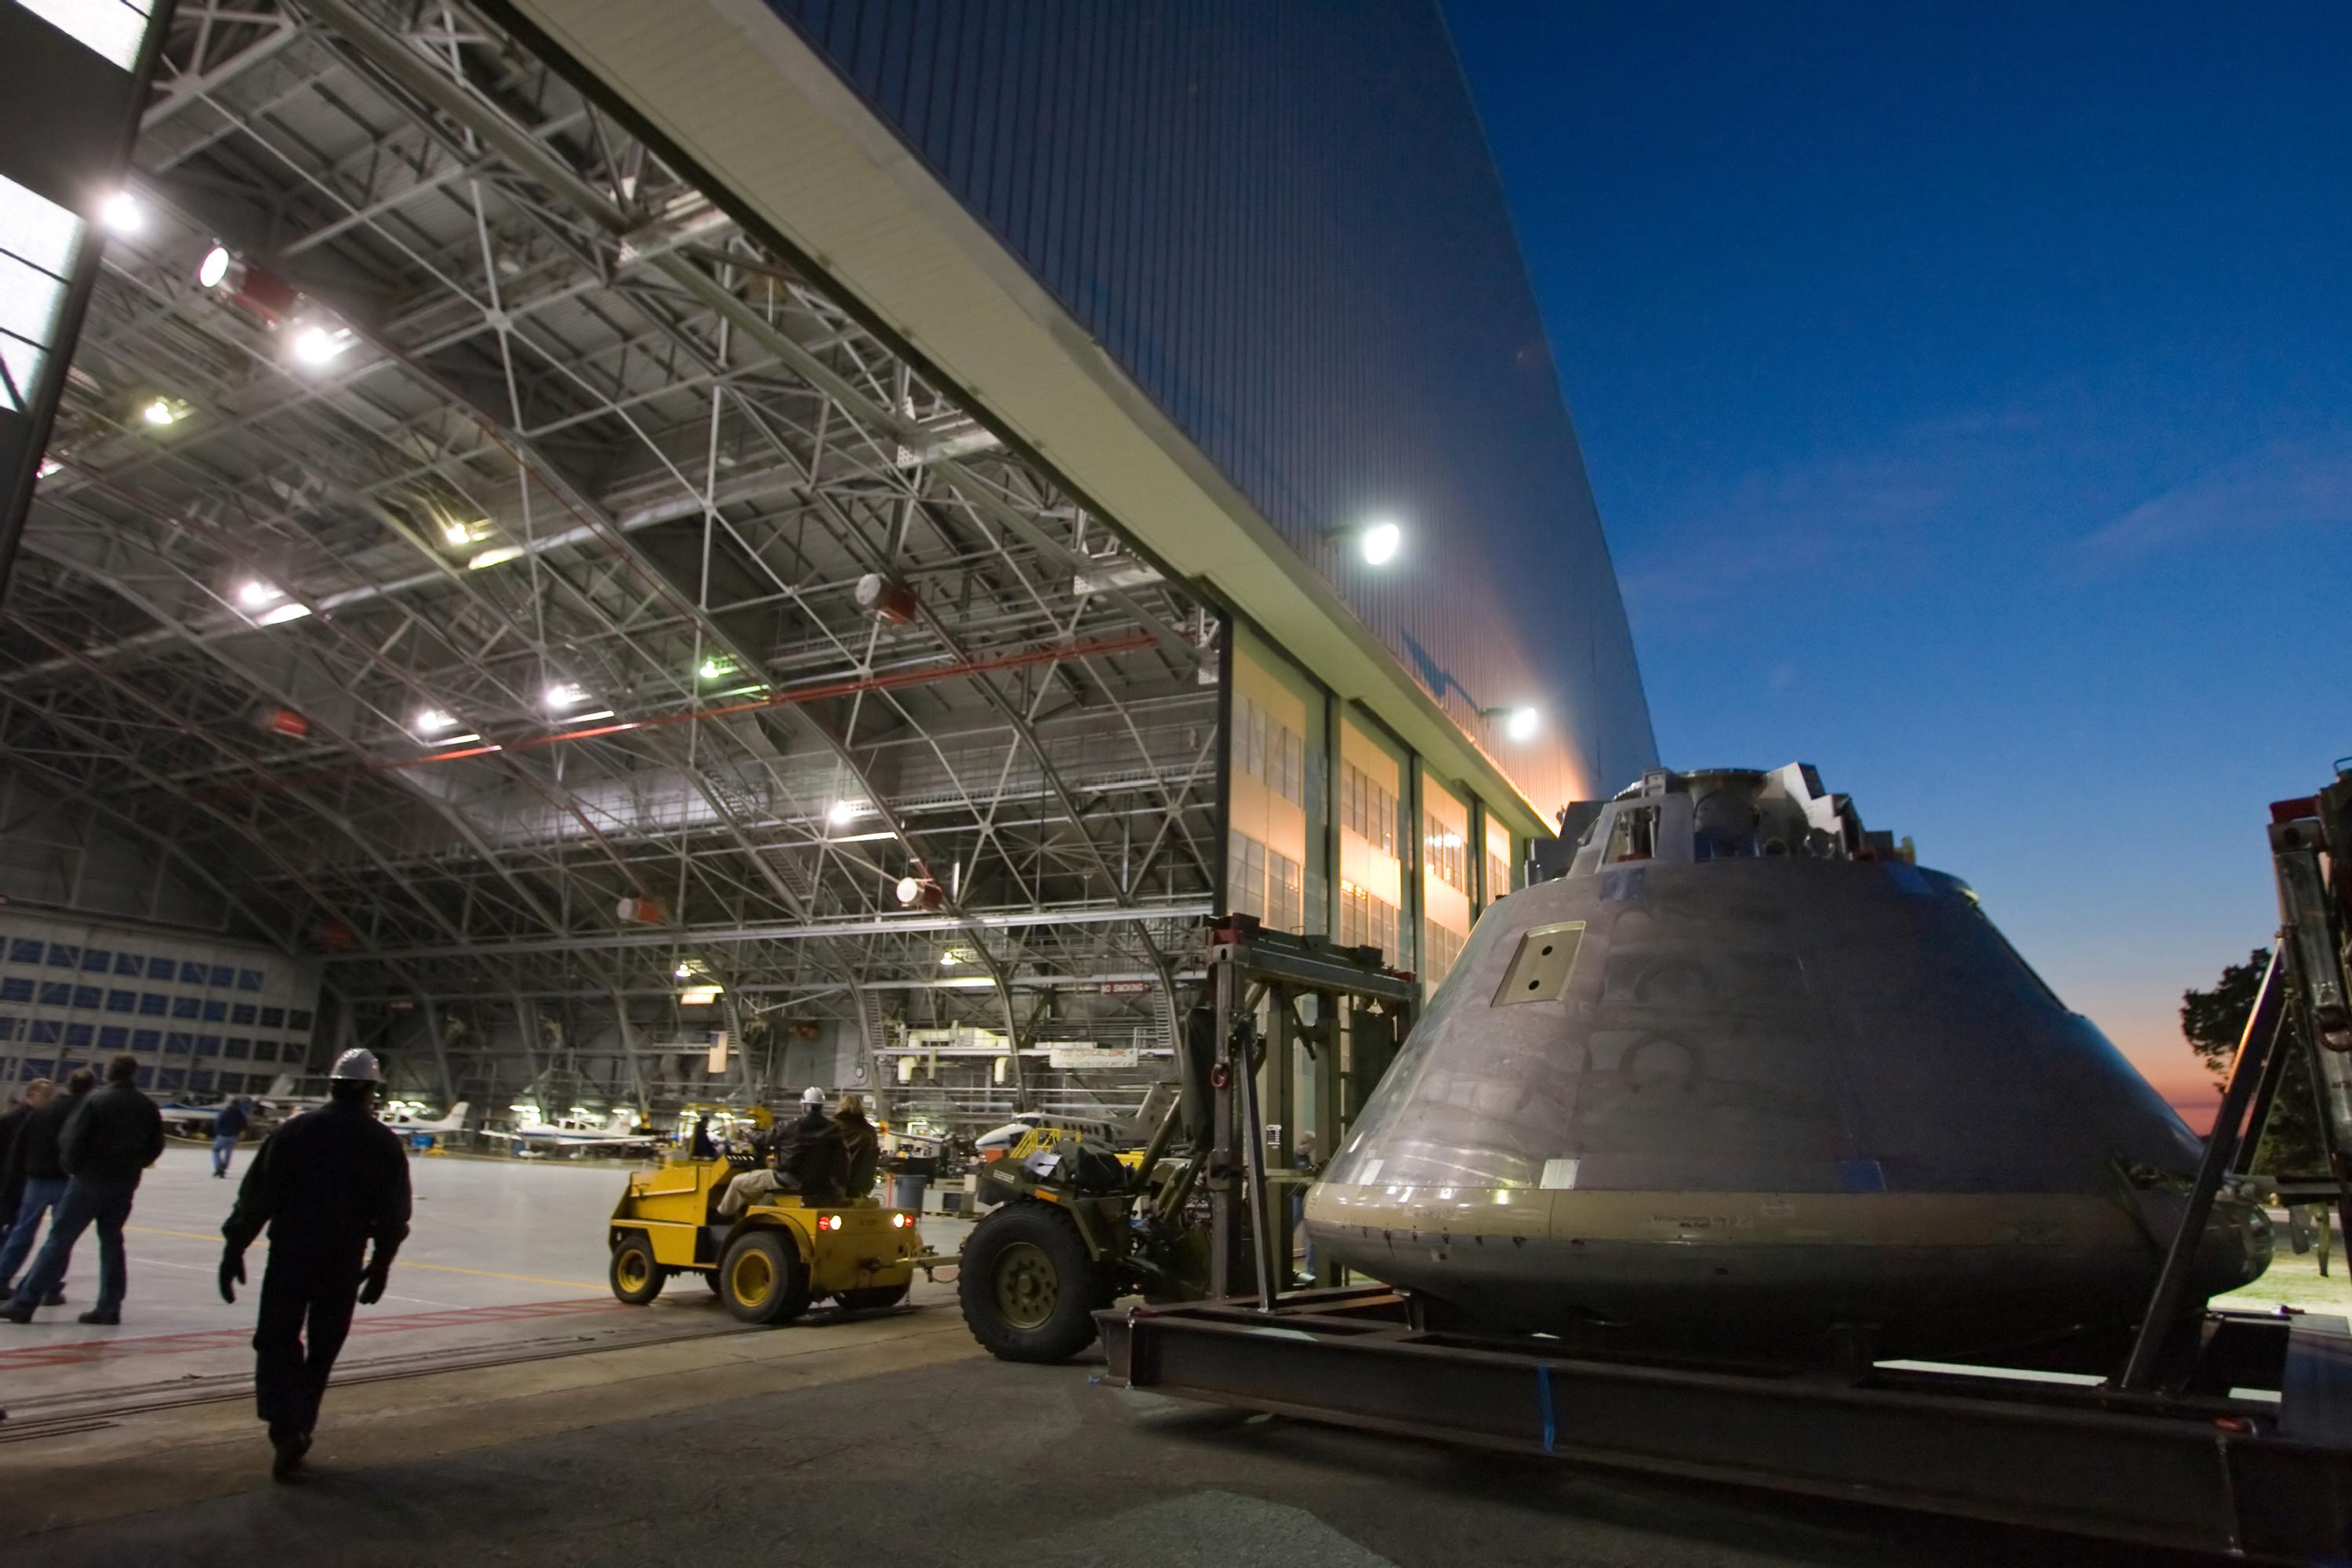 A mock-up of the Orion space capsule heads to its temporary home in a hangar at Langley Research Center.